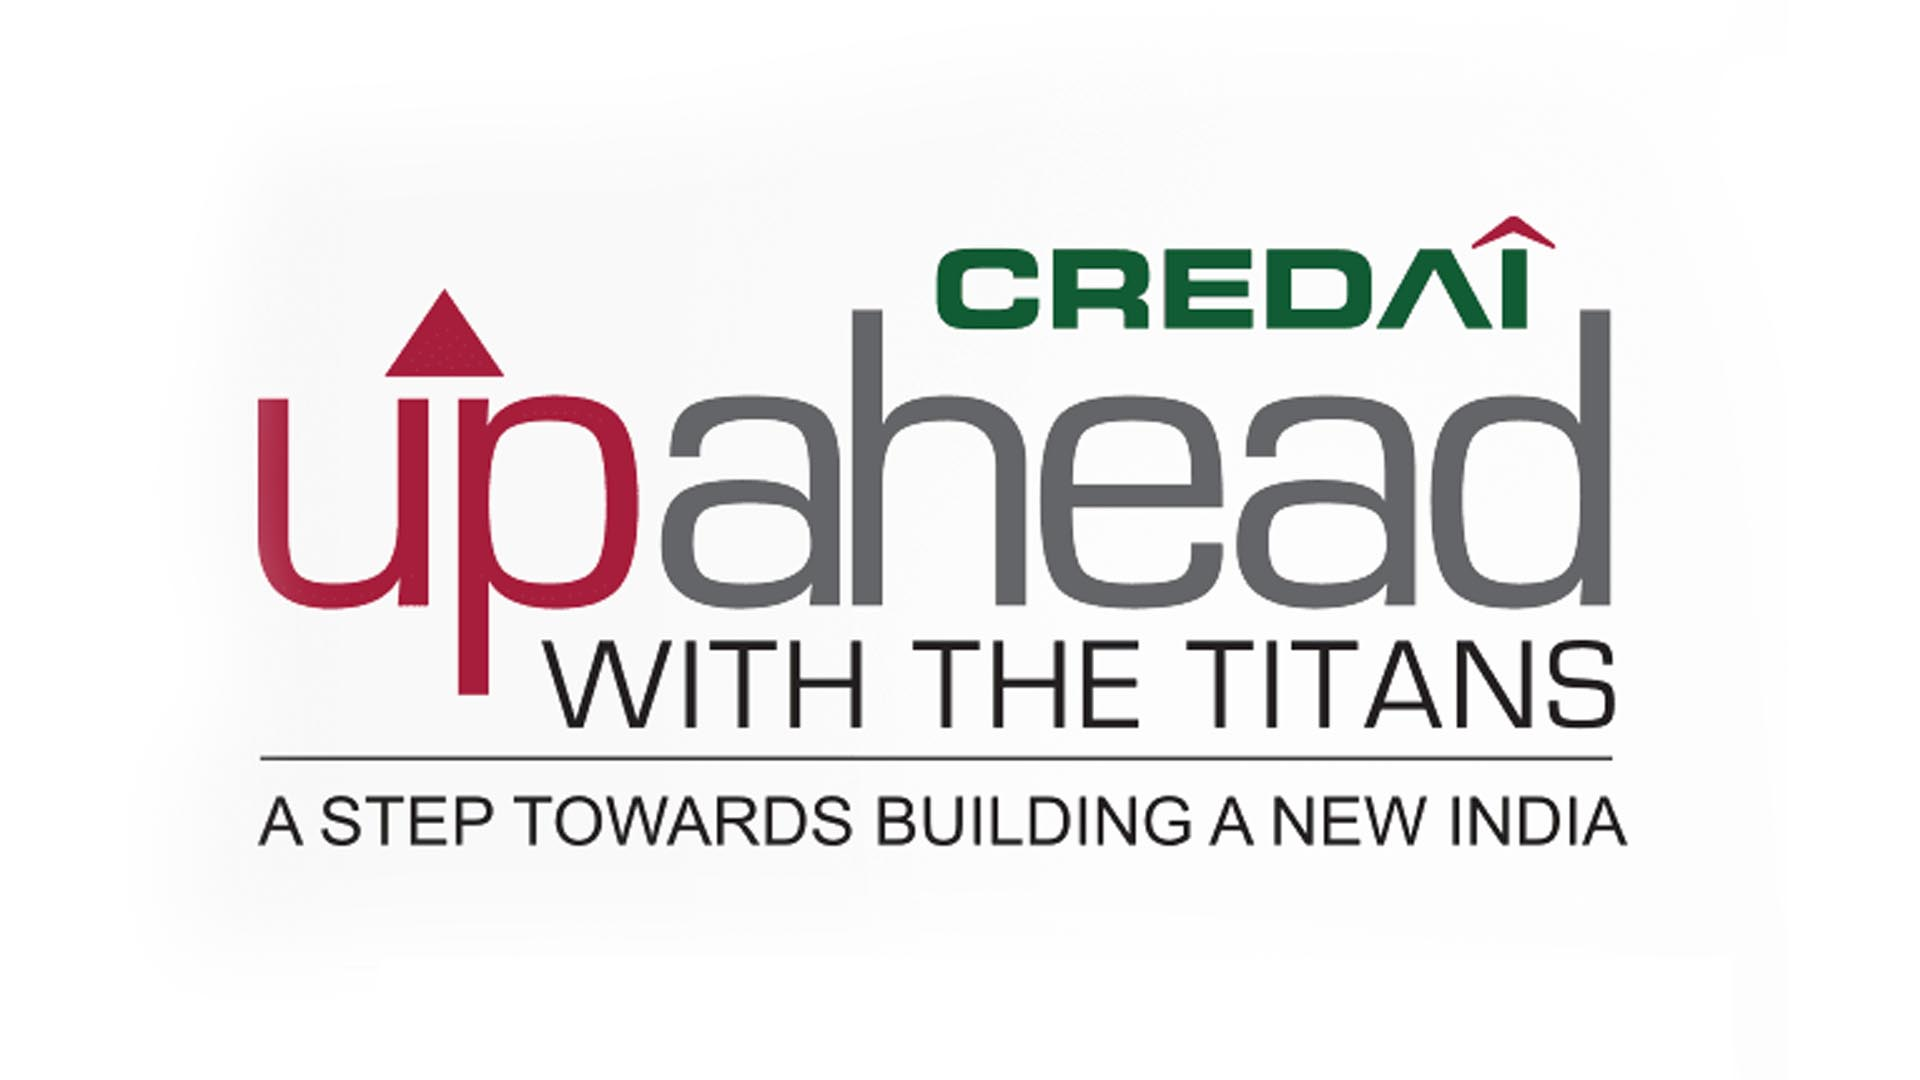 CREDAI Conducts The UP Ahead Conclave 2017